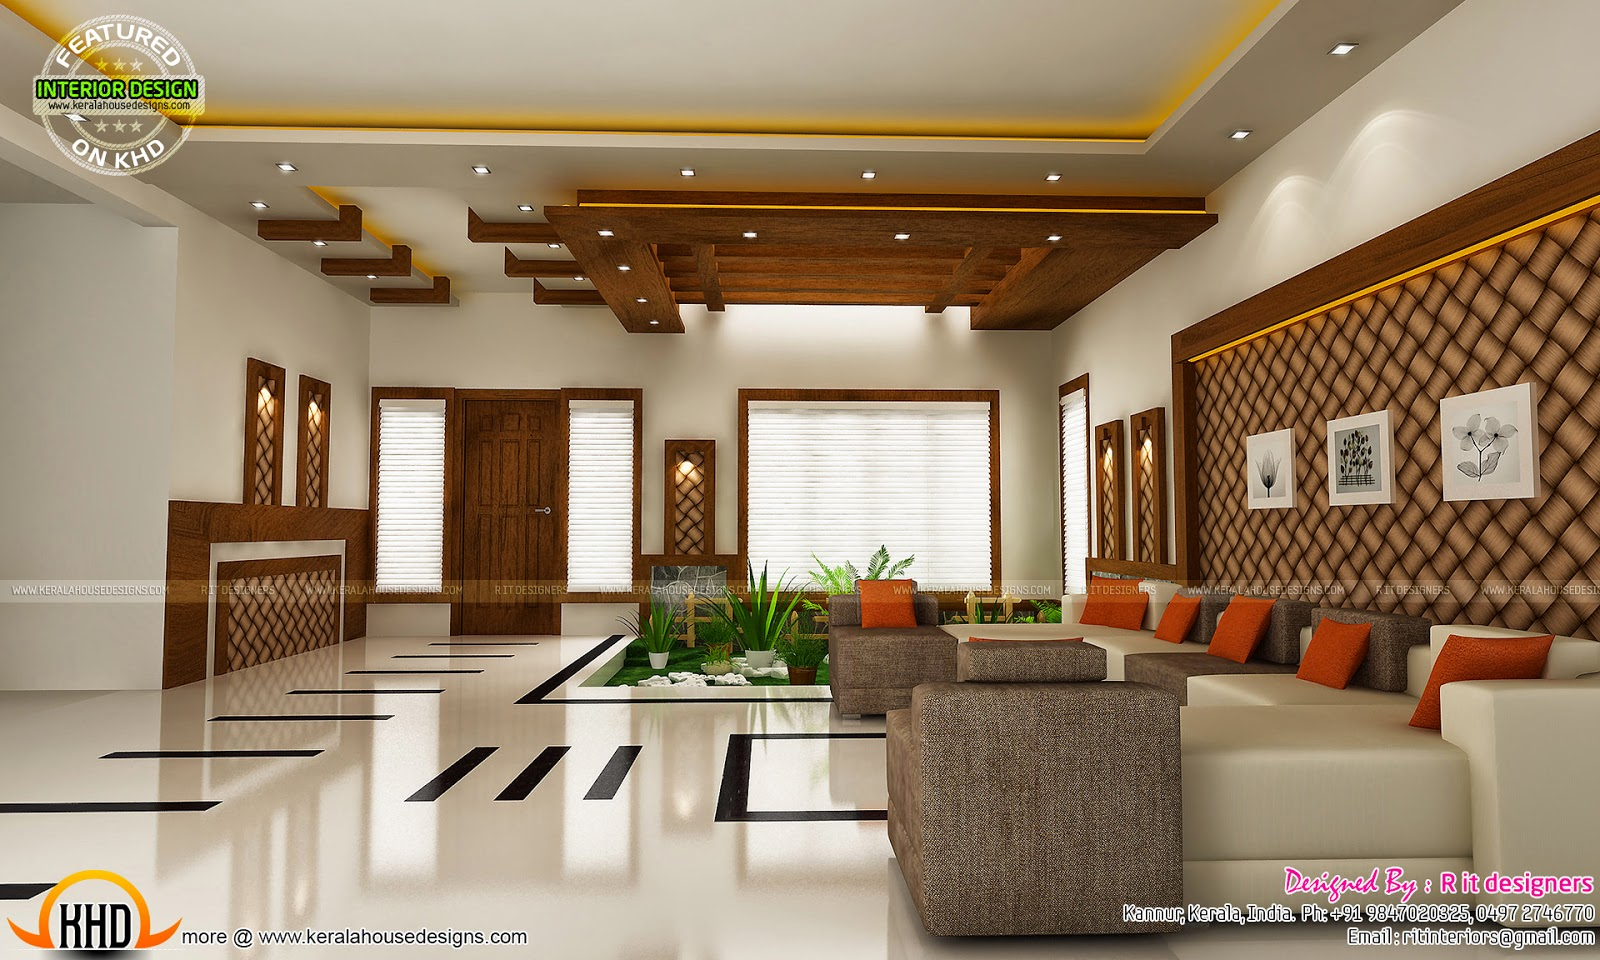 Modern and unique dining kitchen interior kerala home design and floor plans Interior designing of your home